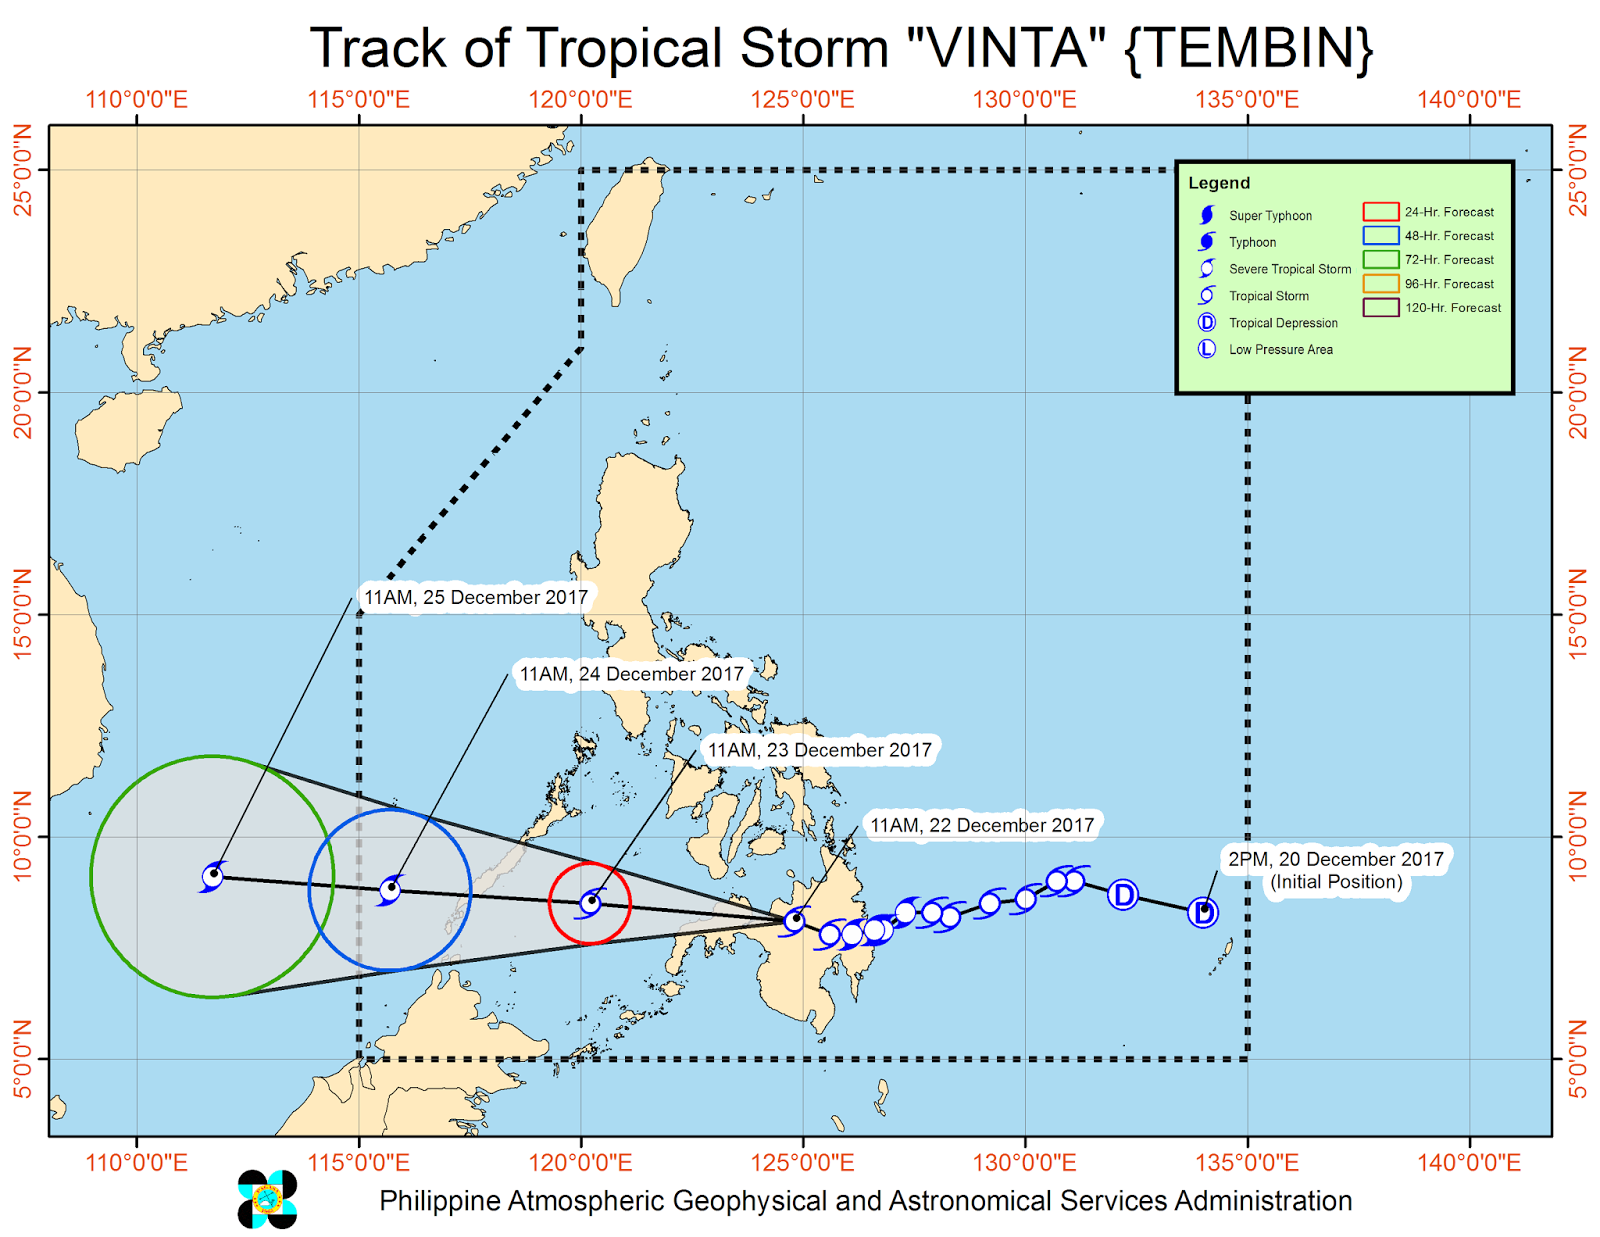 Below Is The Forecast Movement And Track Of Vinta In Next 24h 48h 72h Images Courtesy PAGASA